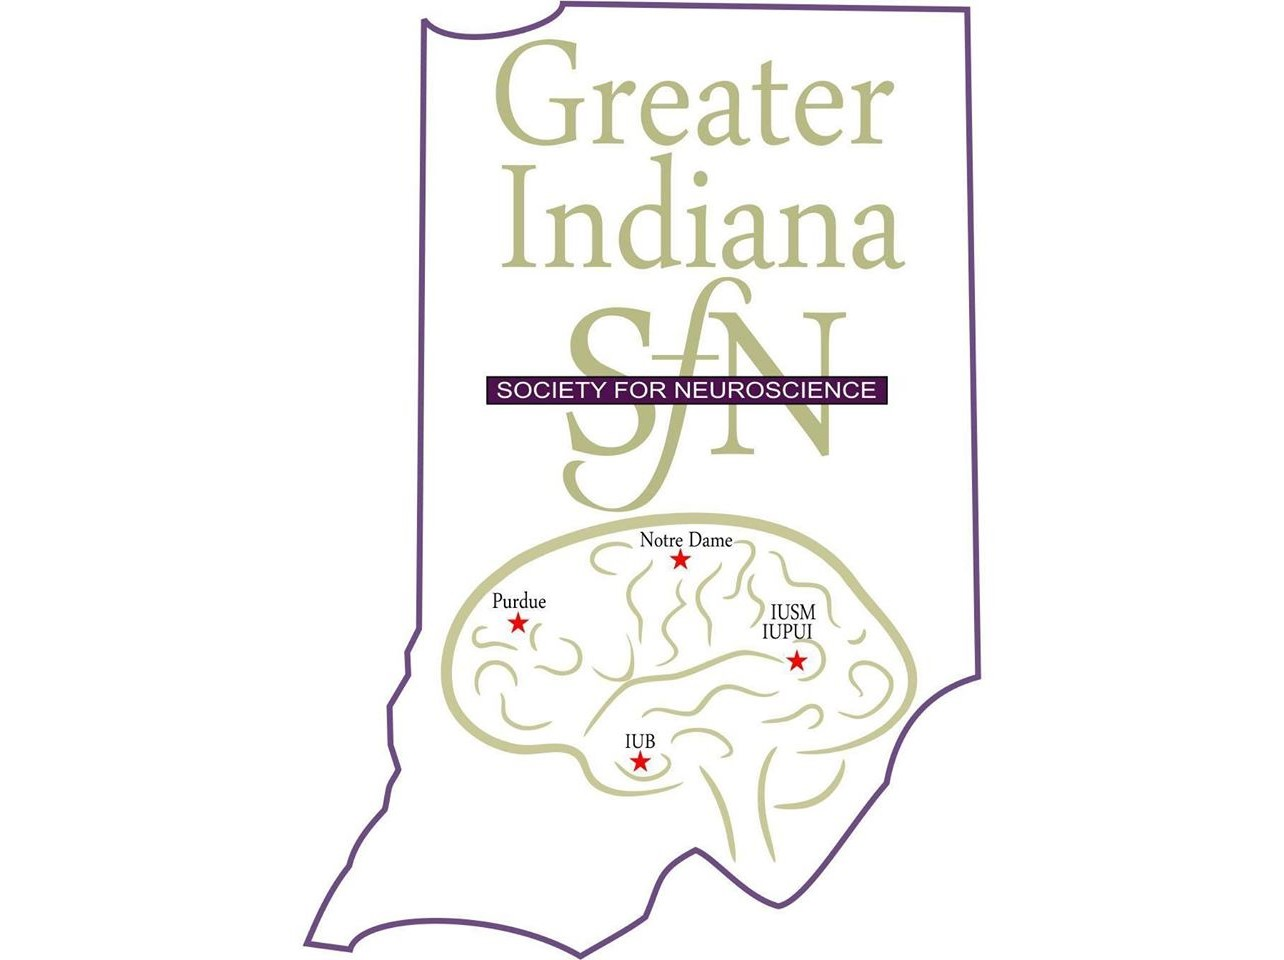 greater-indiana-society-for-neuroscience.jpg